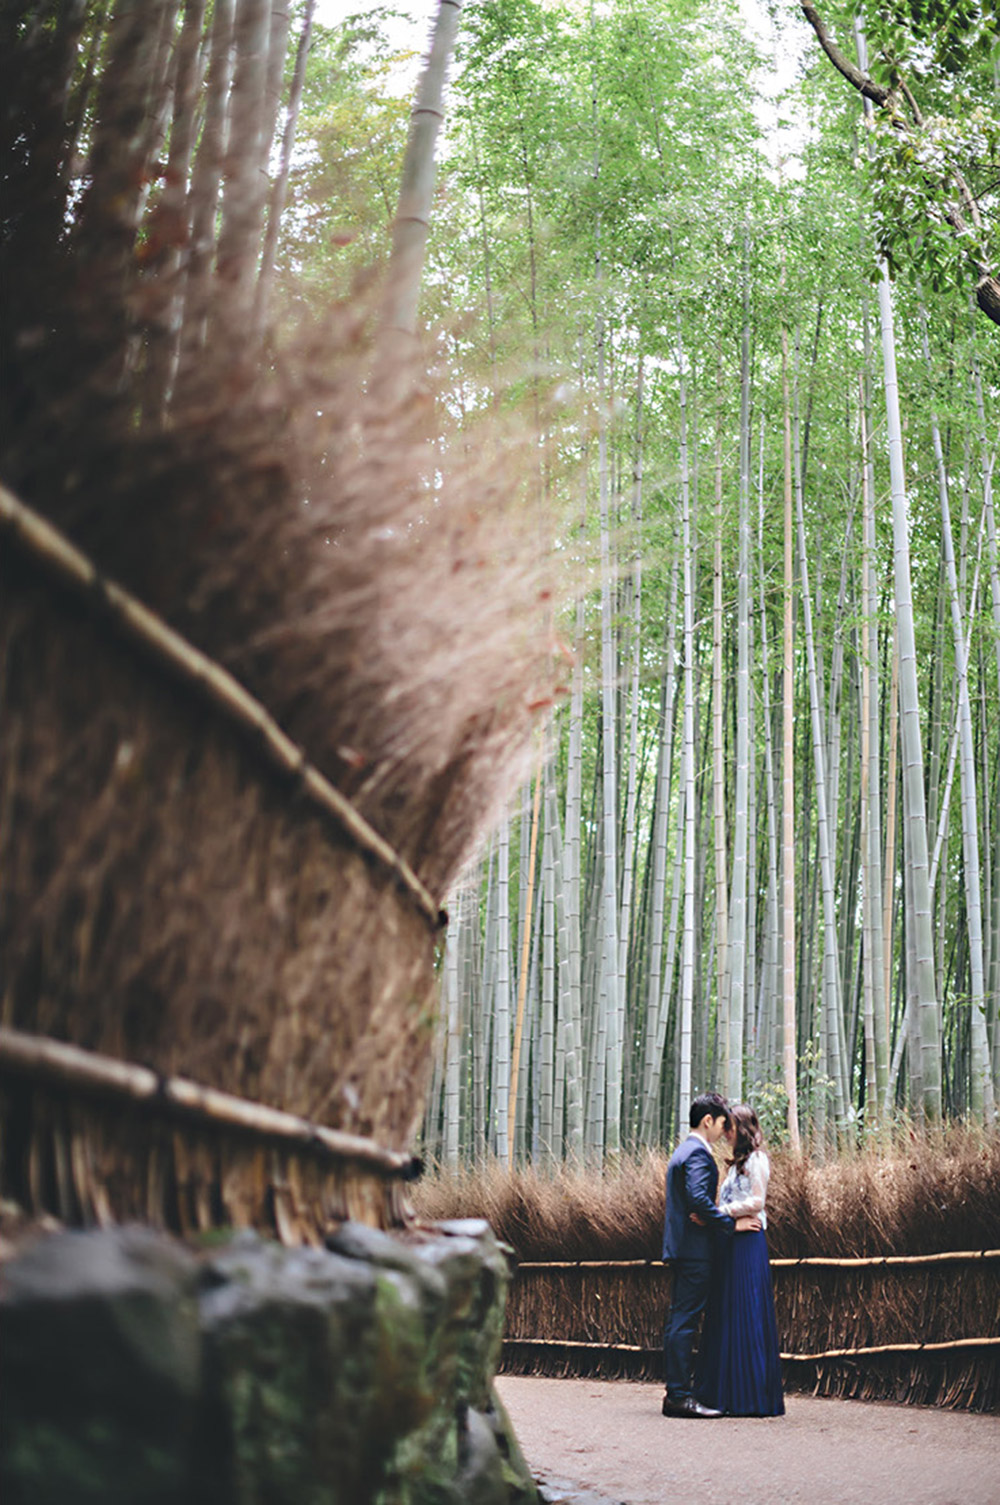 Arashiyama Bamboo Grove, Kyoto. Photo by History Studio. www.theweddingnotebook.com